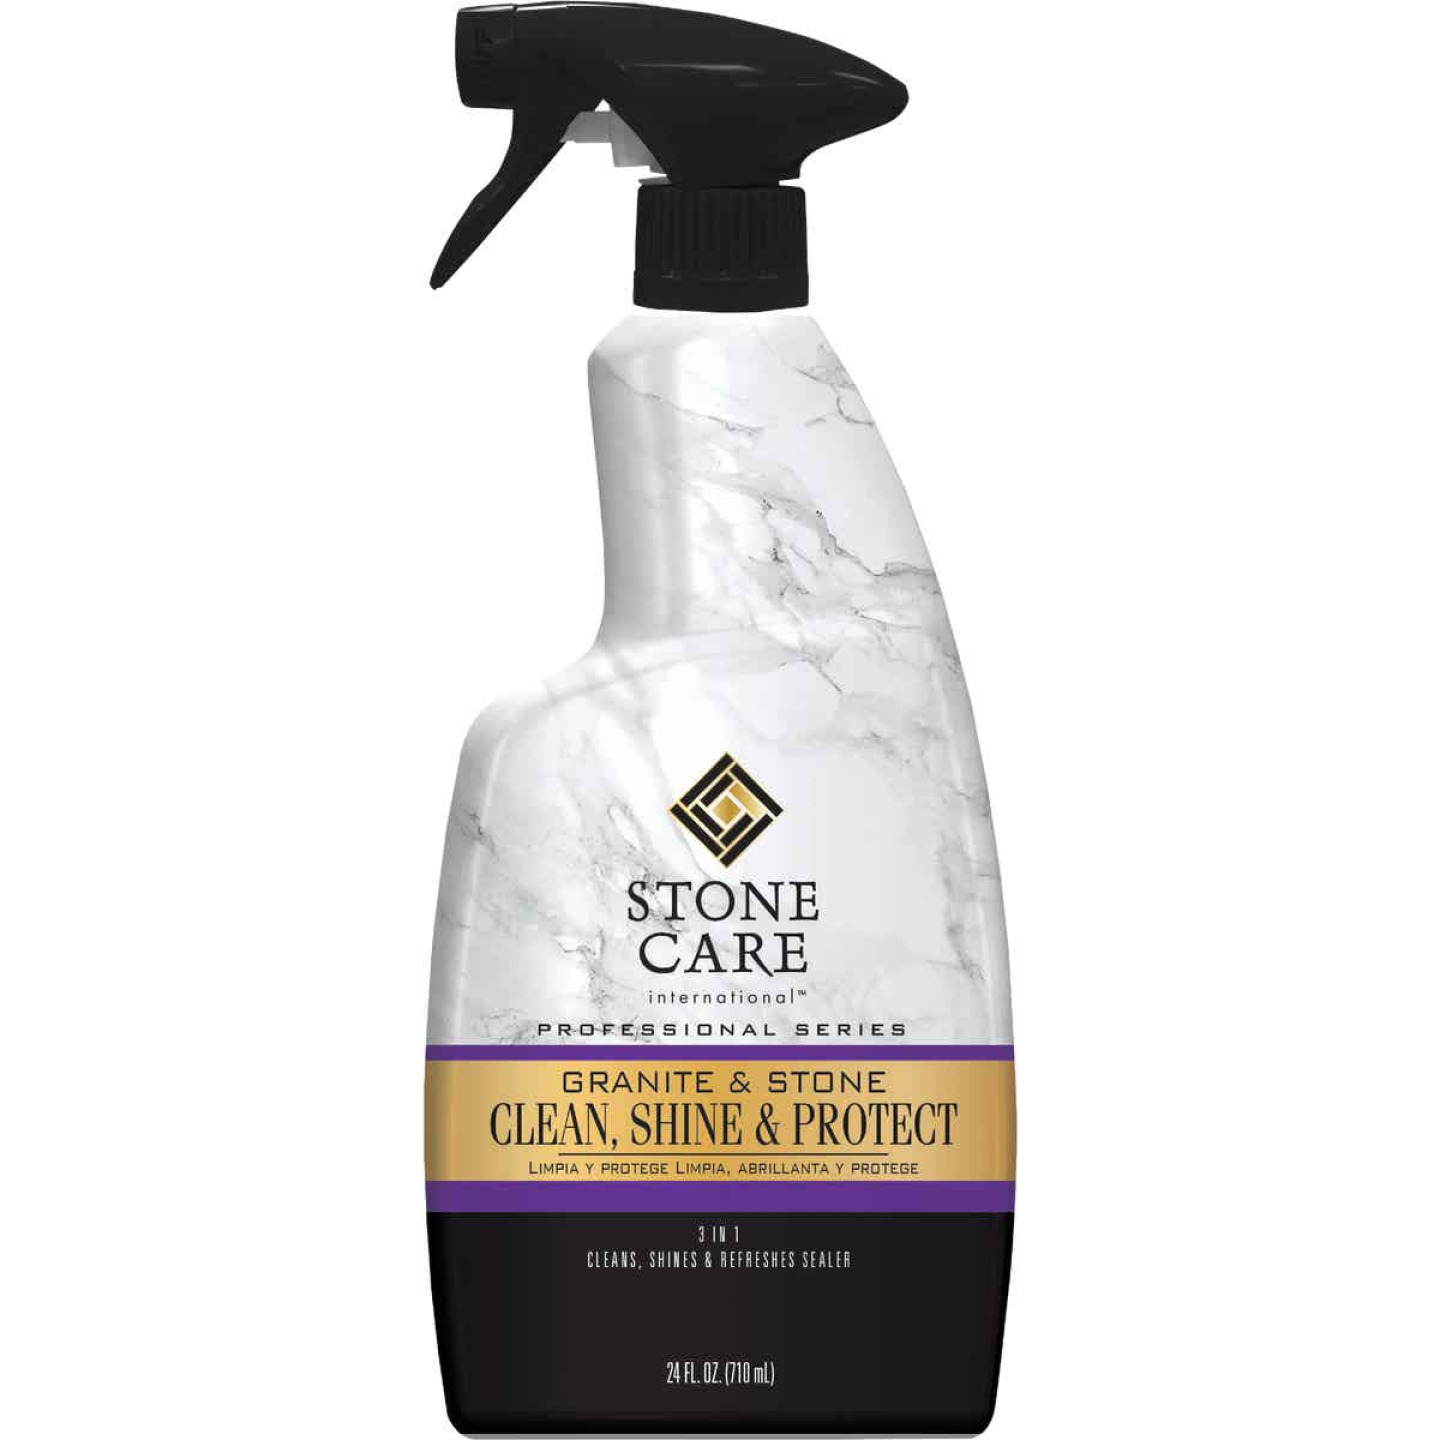 Stone Care International 24 Oz. Clean, Shine & Protect Cleaner Image 1